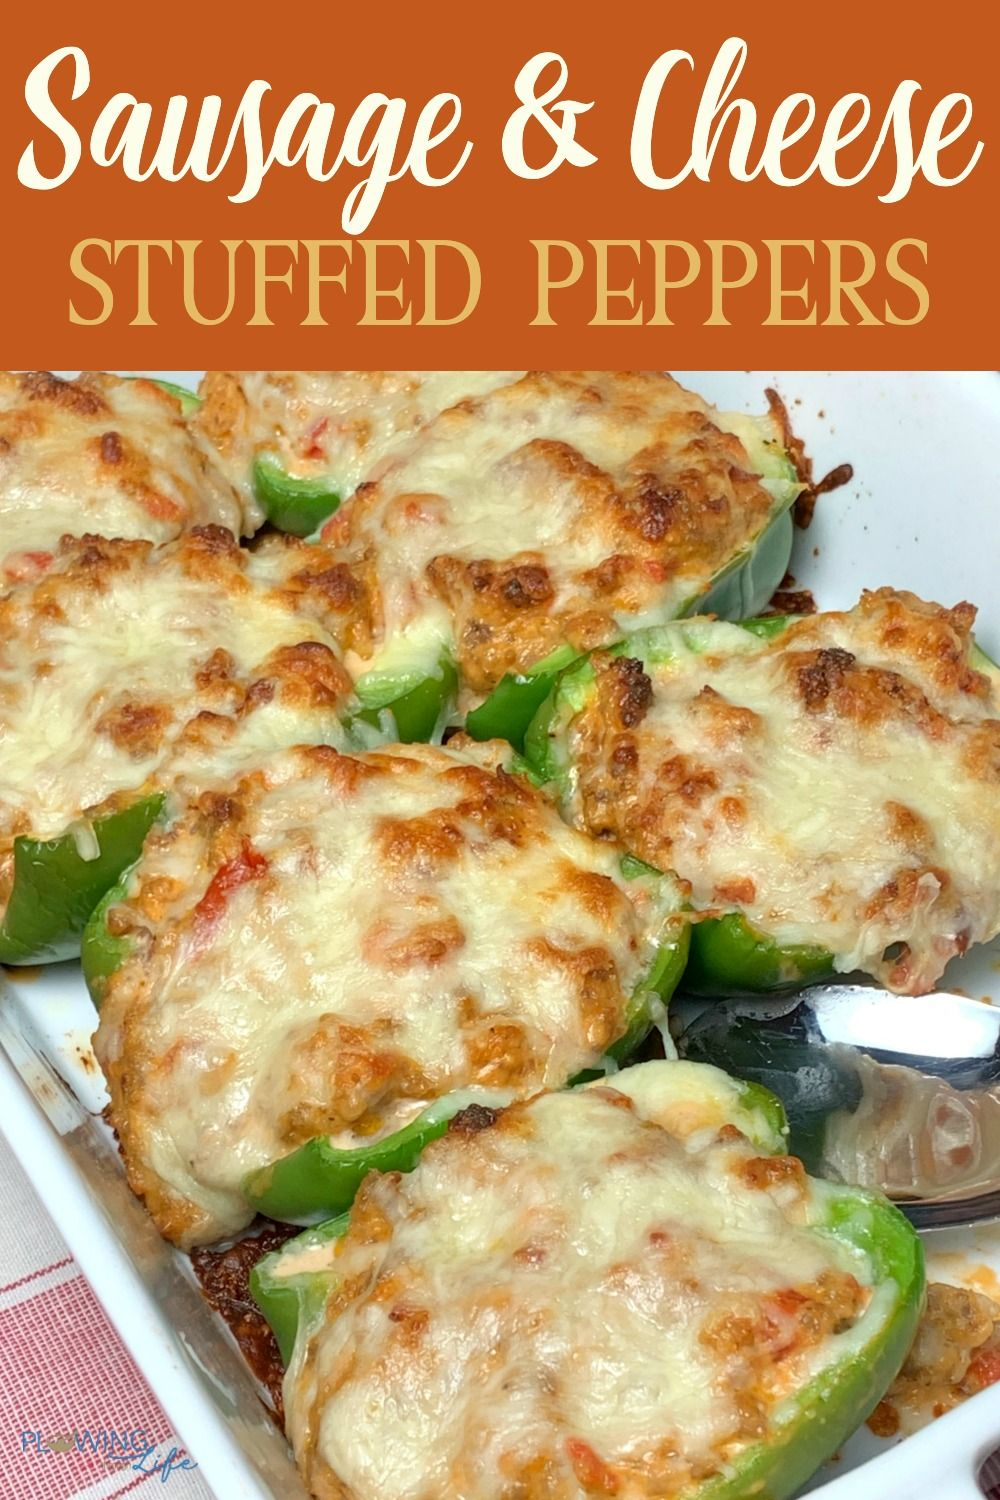 Sausage Cream Cheese Stuffed Bell Pepper In 2020 Stuffed Peppers Stuffed Green Peppers Keto Stuffed Peppers